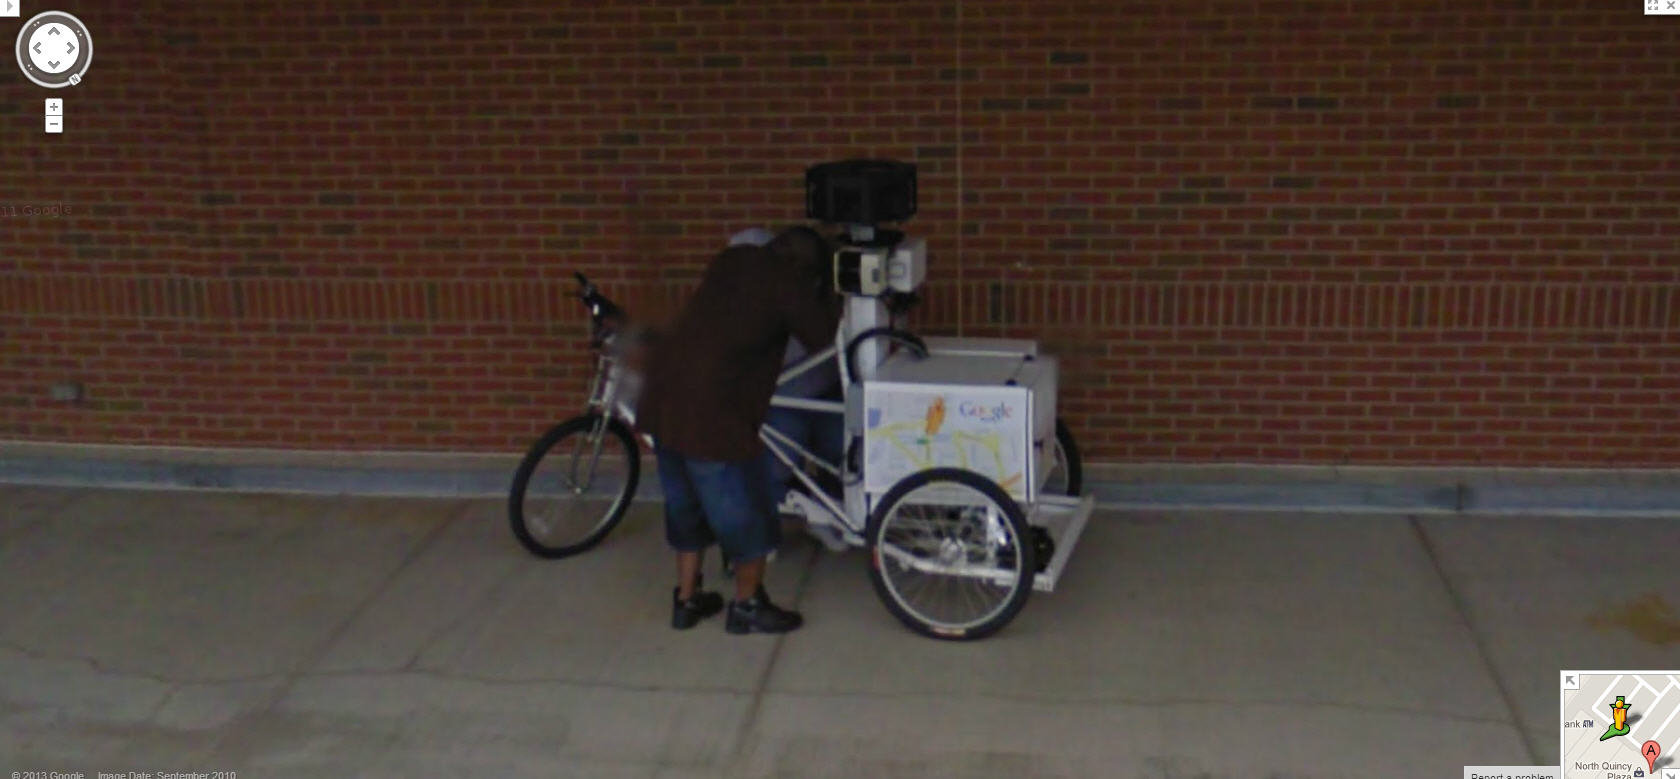 The Google Street View Trike Visits a Strip Mall